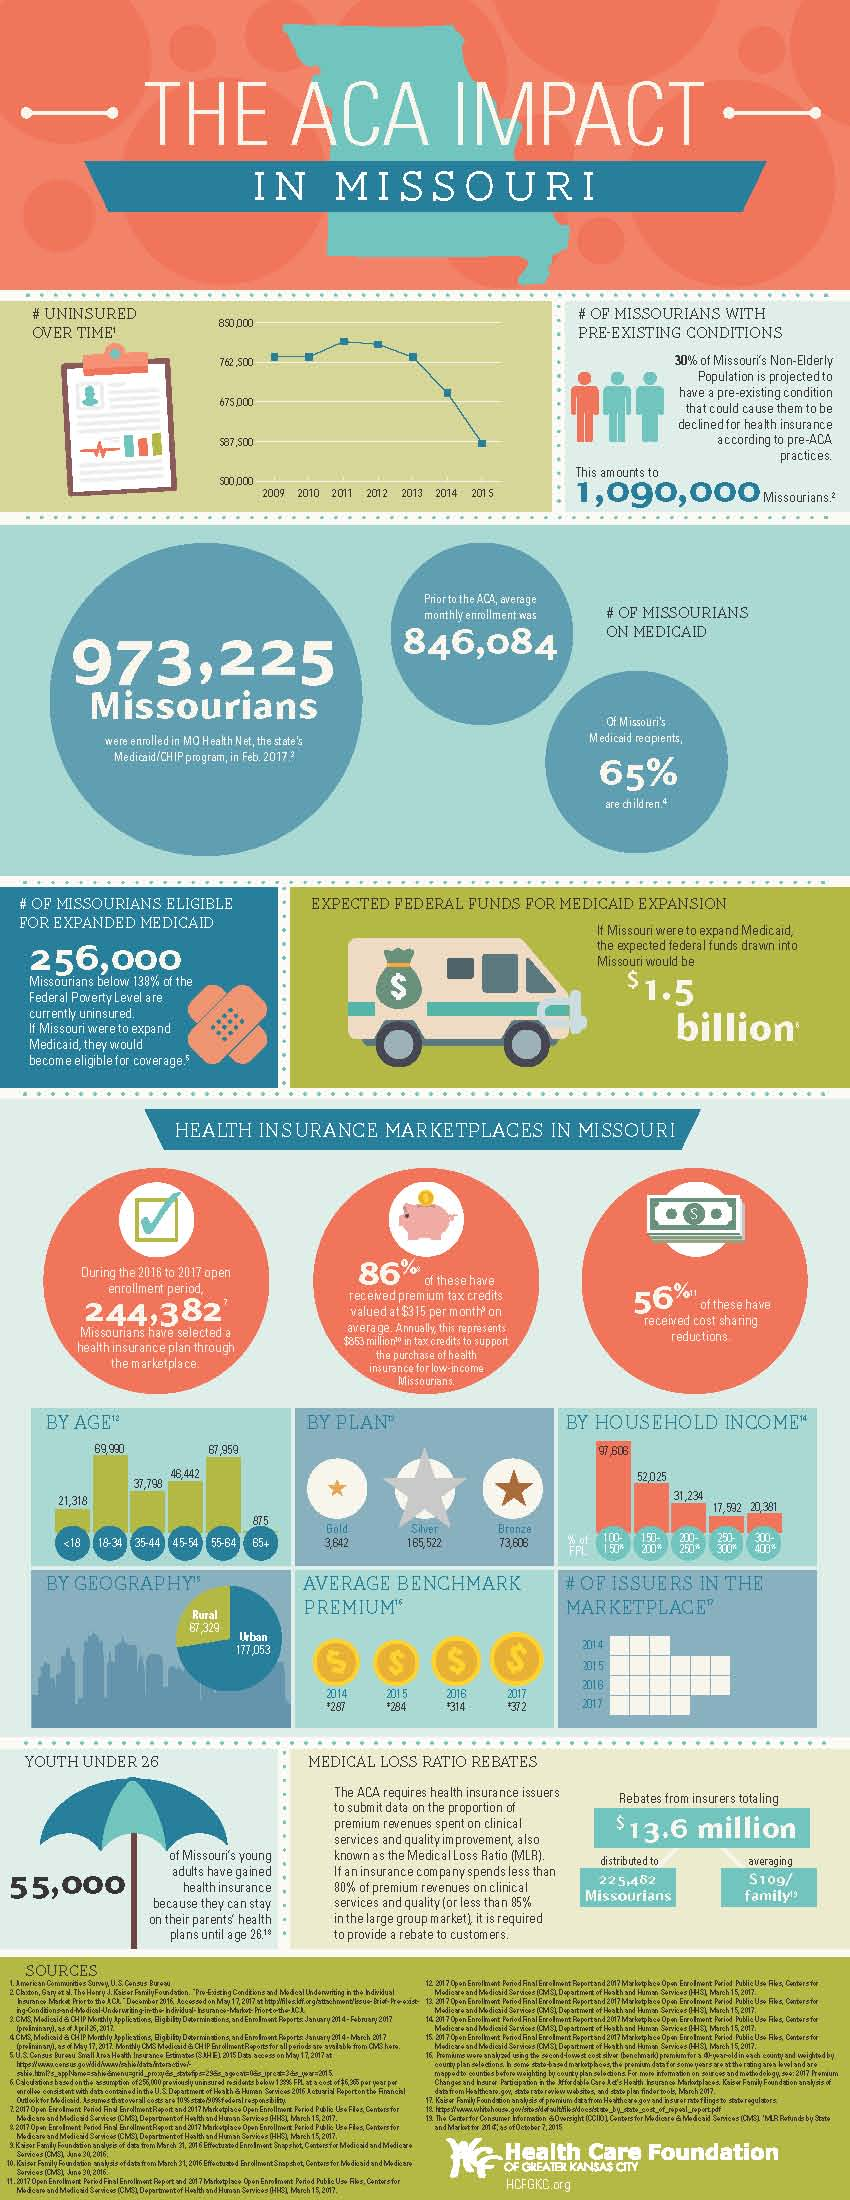 Affordable Care Act, Missouri, Health Forward Foundation, Greater Kansas City